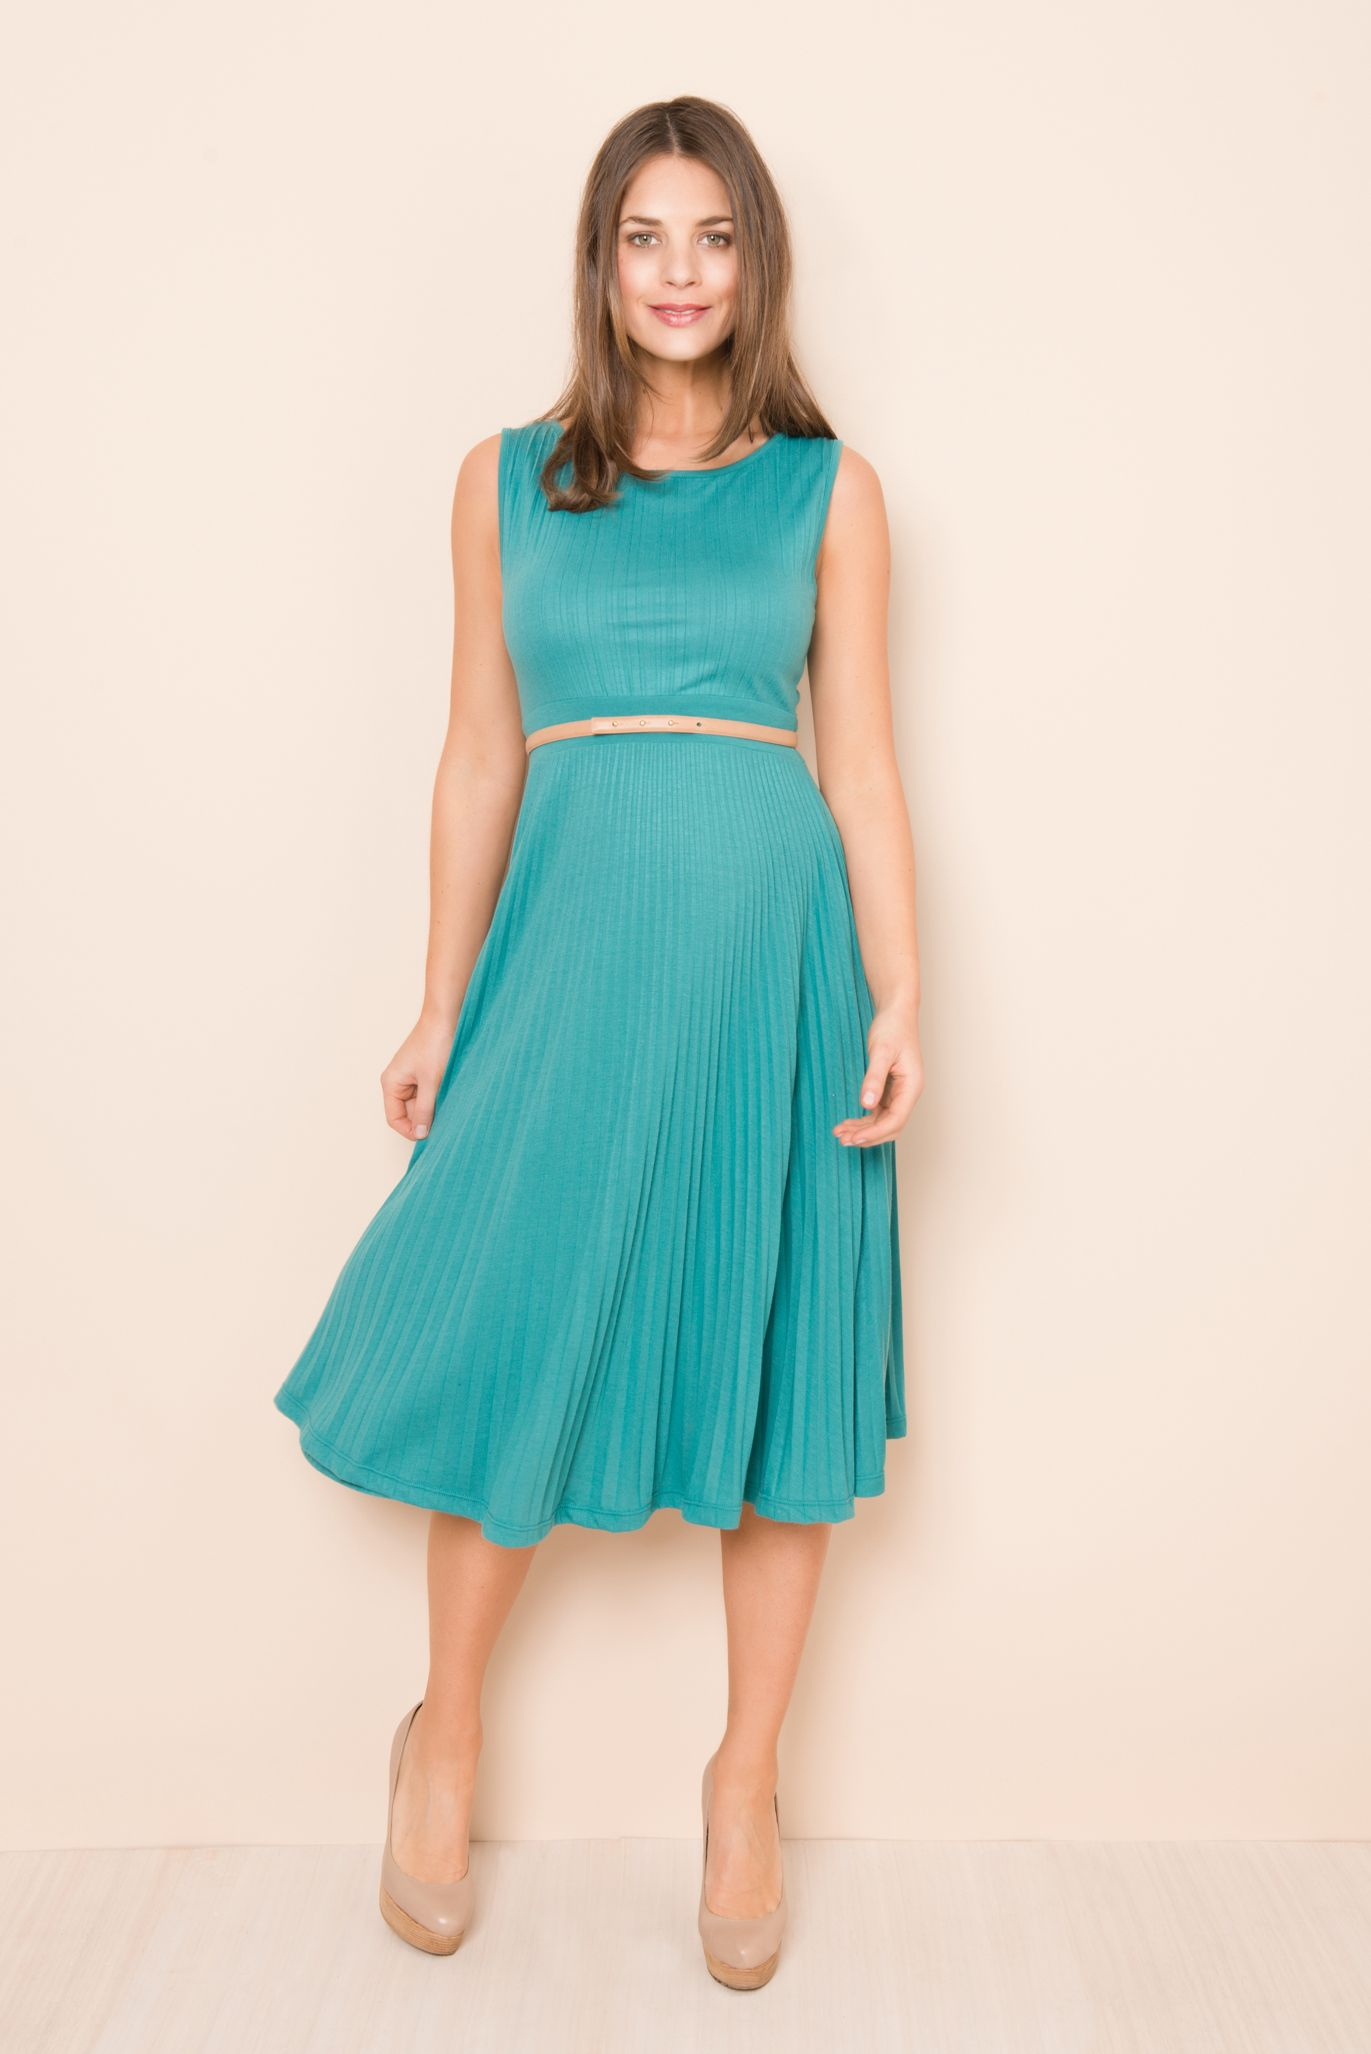 Knife Pleat Dress. Simple cute stylish maternity d… | Trends for ...